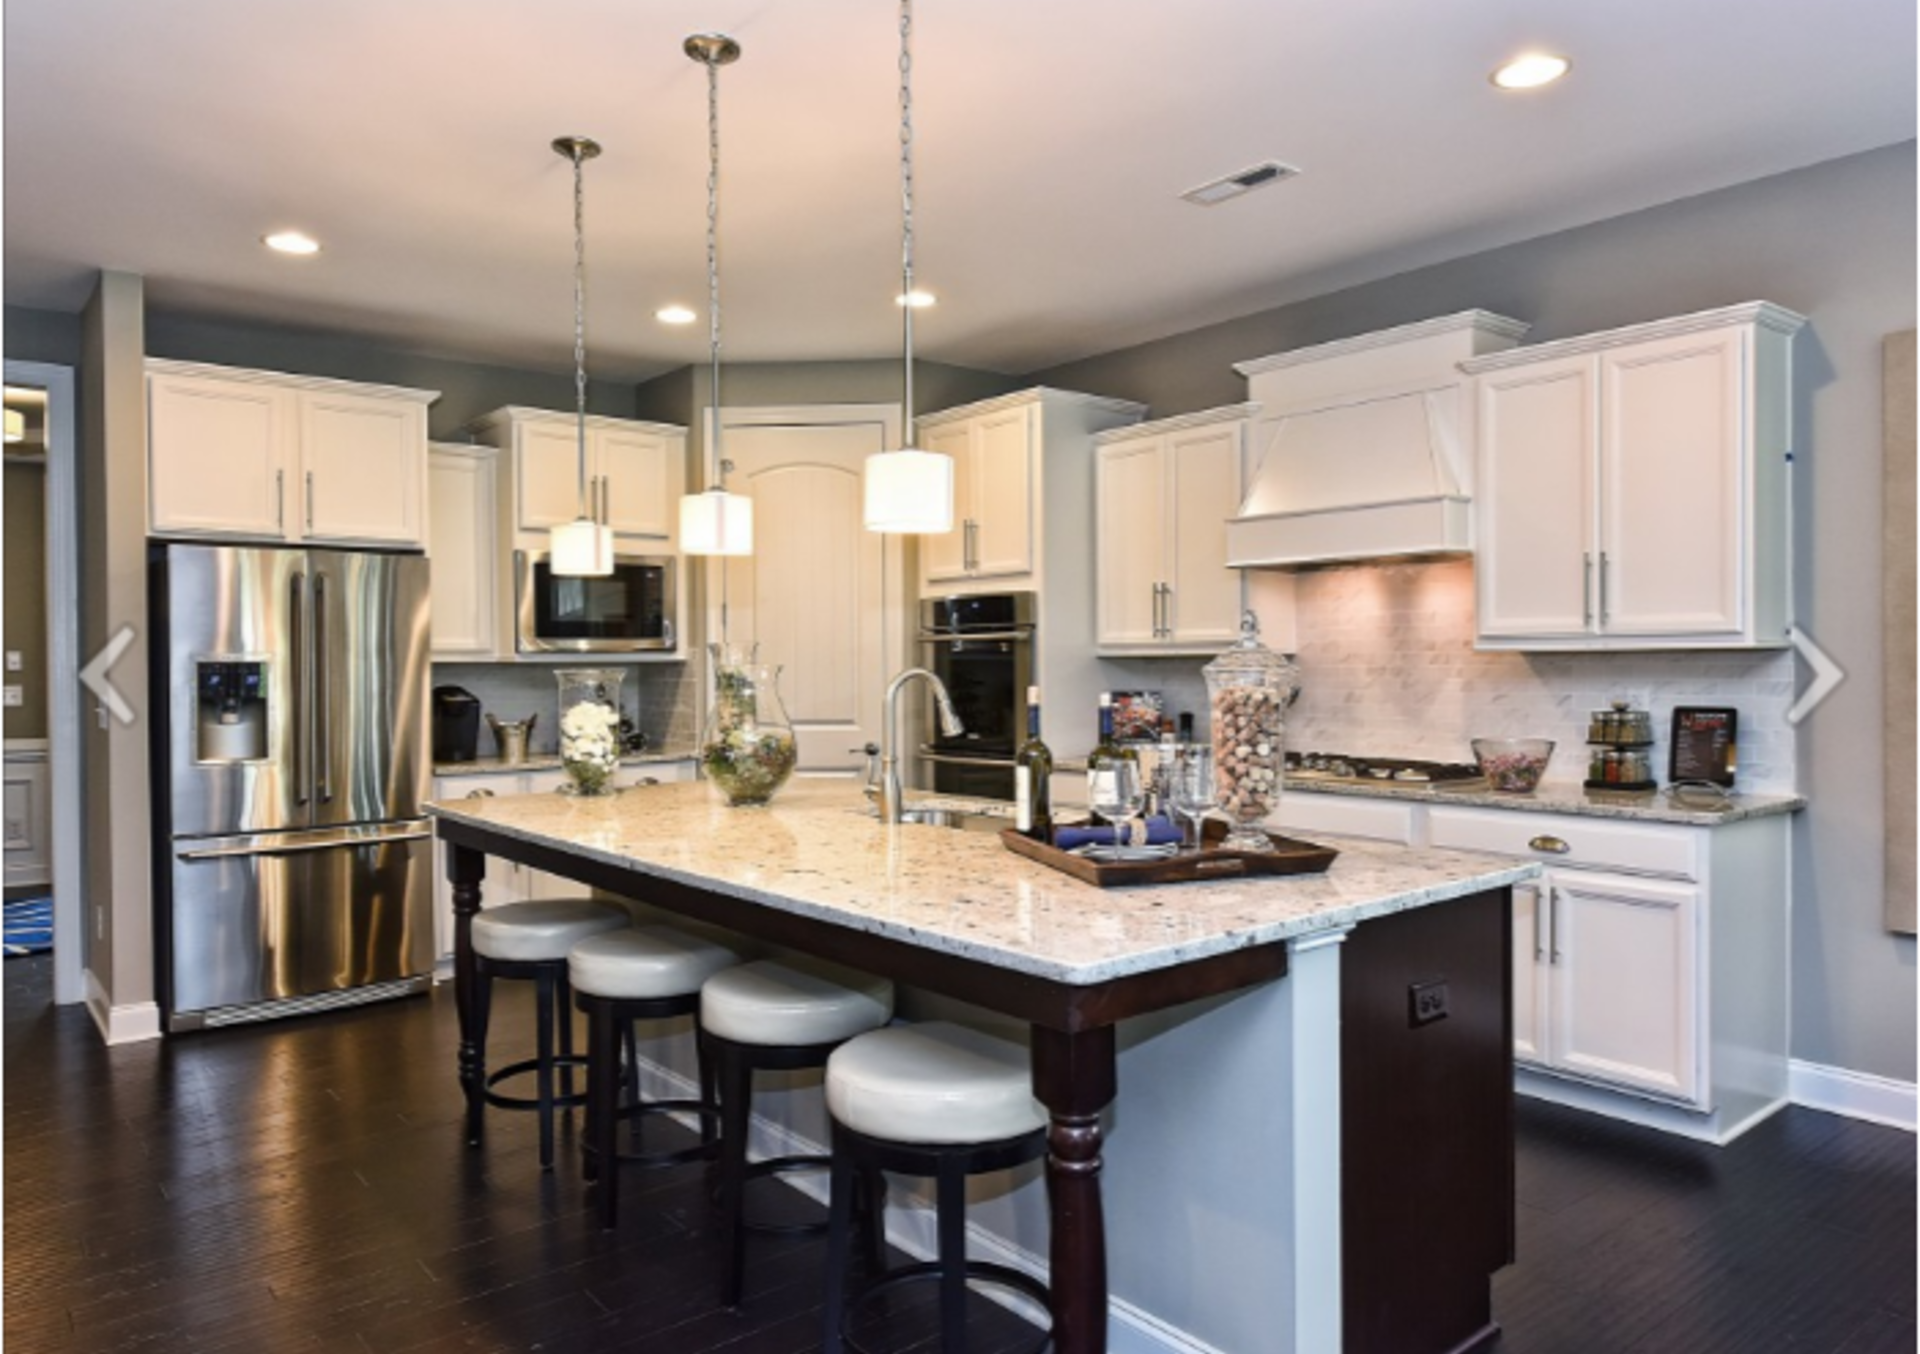 Creating a Clutter-Free Kitchen